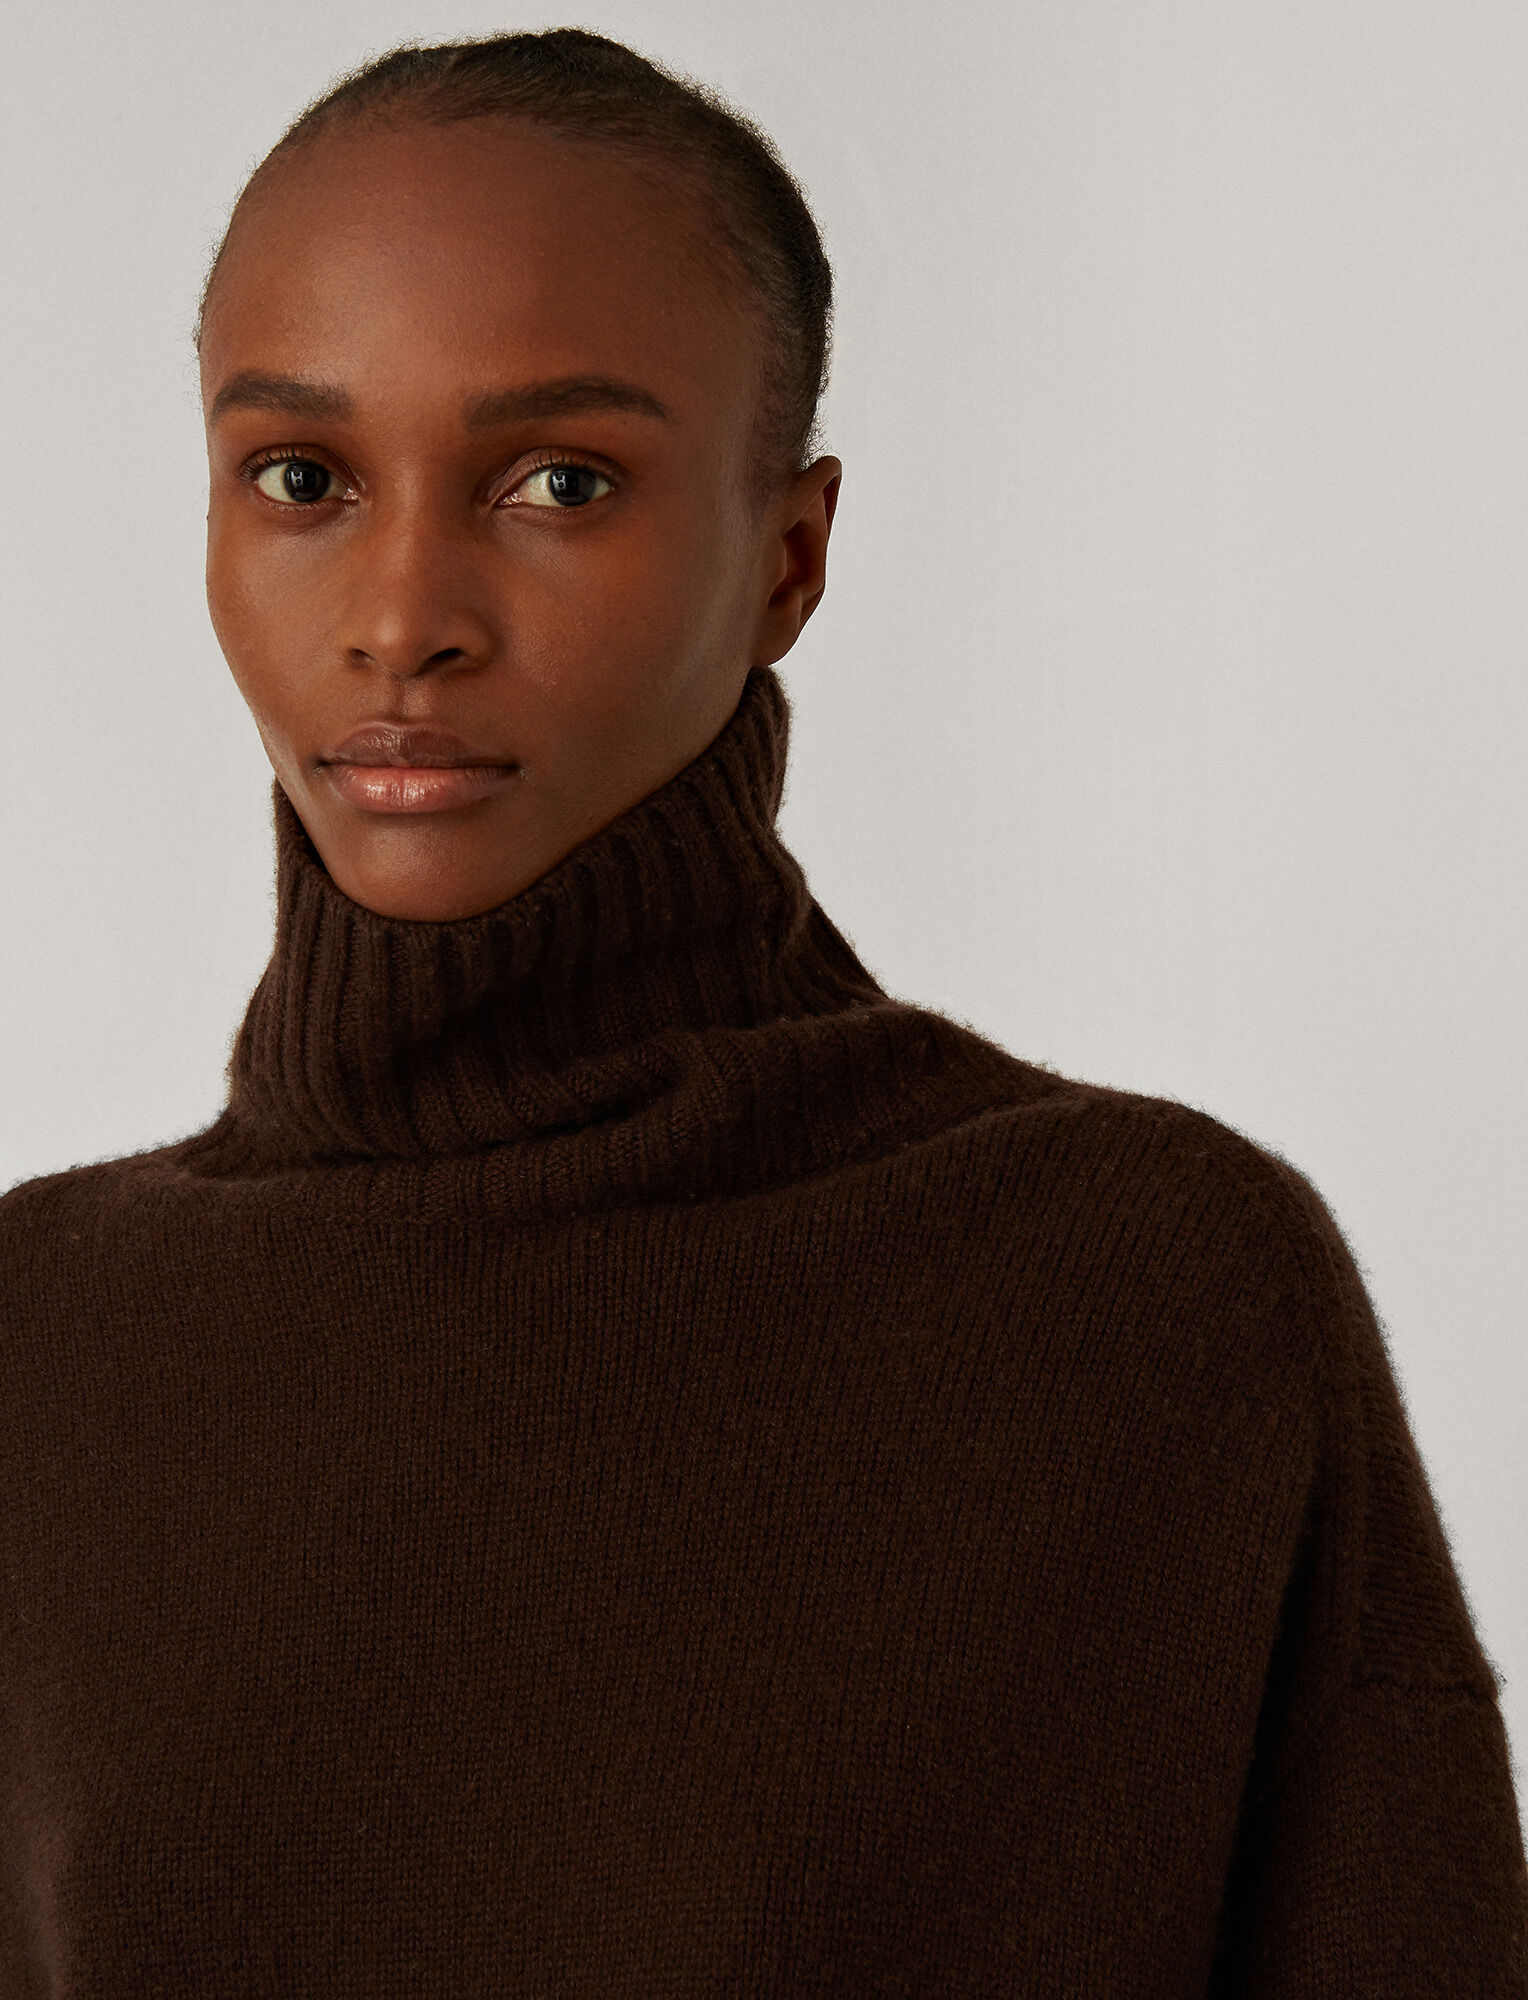 Joseph, High Neck Luxe Cashmere Knit, in Chocolate